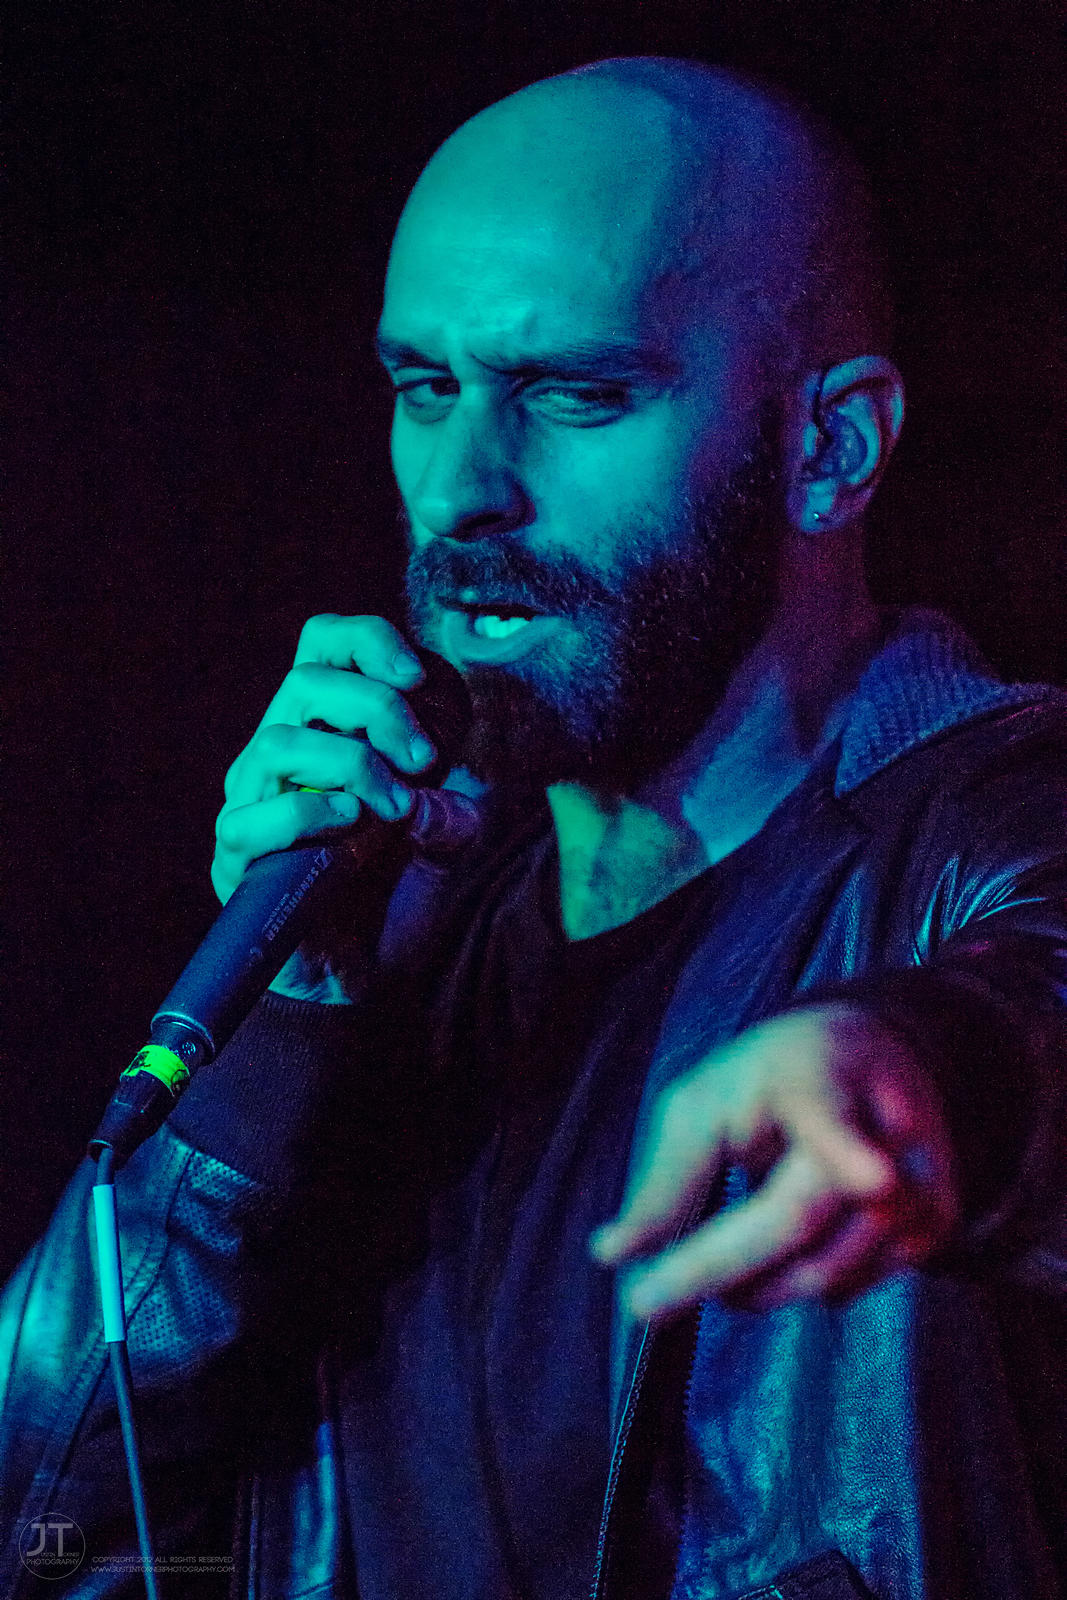 Hoopla - X Ambassadors, Blue Moose Tap House, February 17, 2015 photos